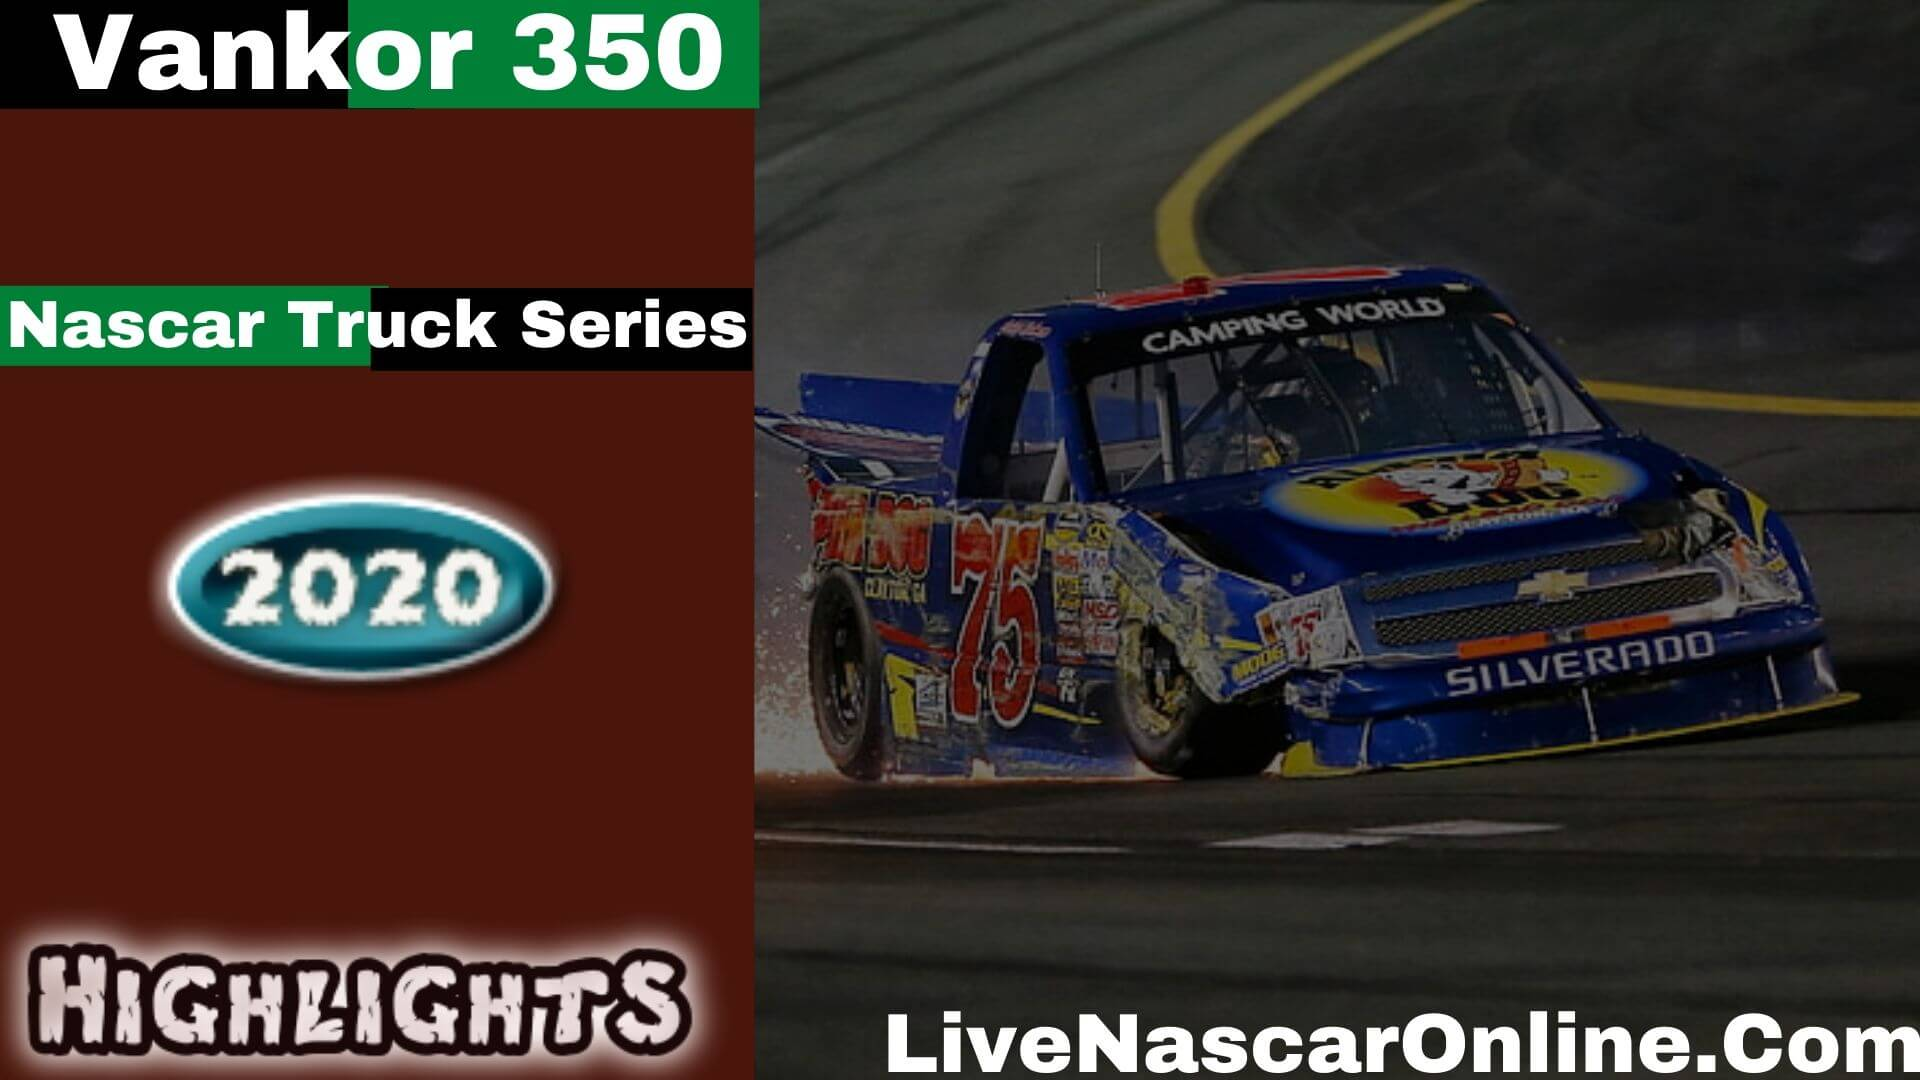 Vankor 350 Nascar Truck Series Highlights 2020